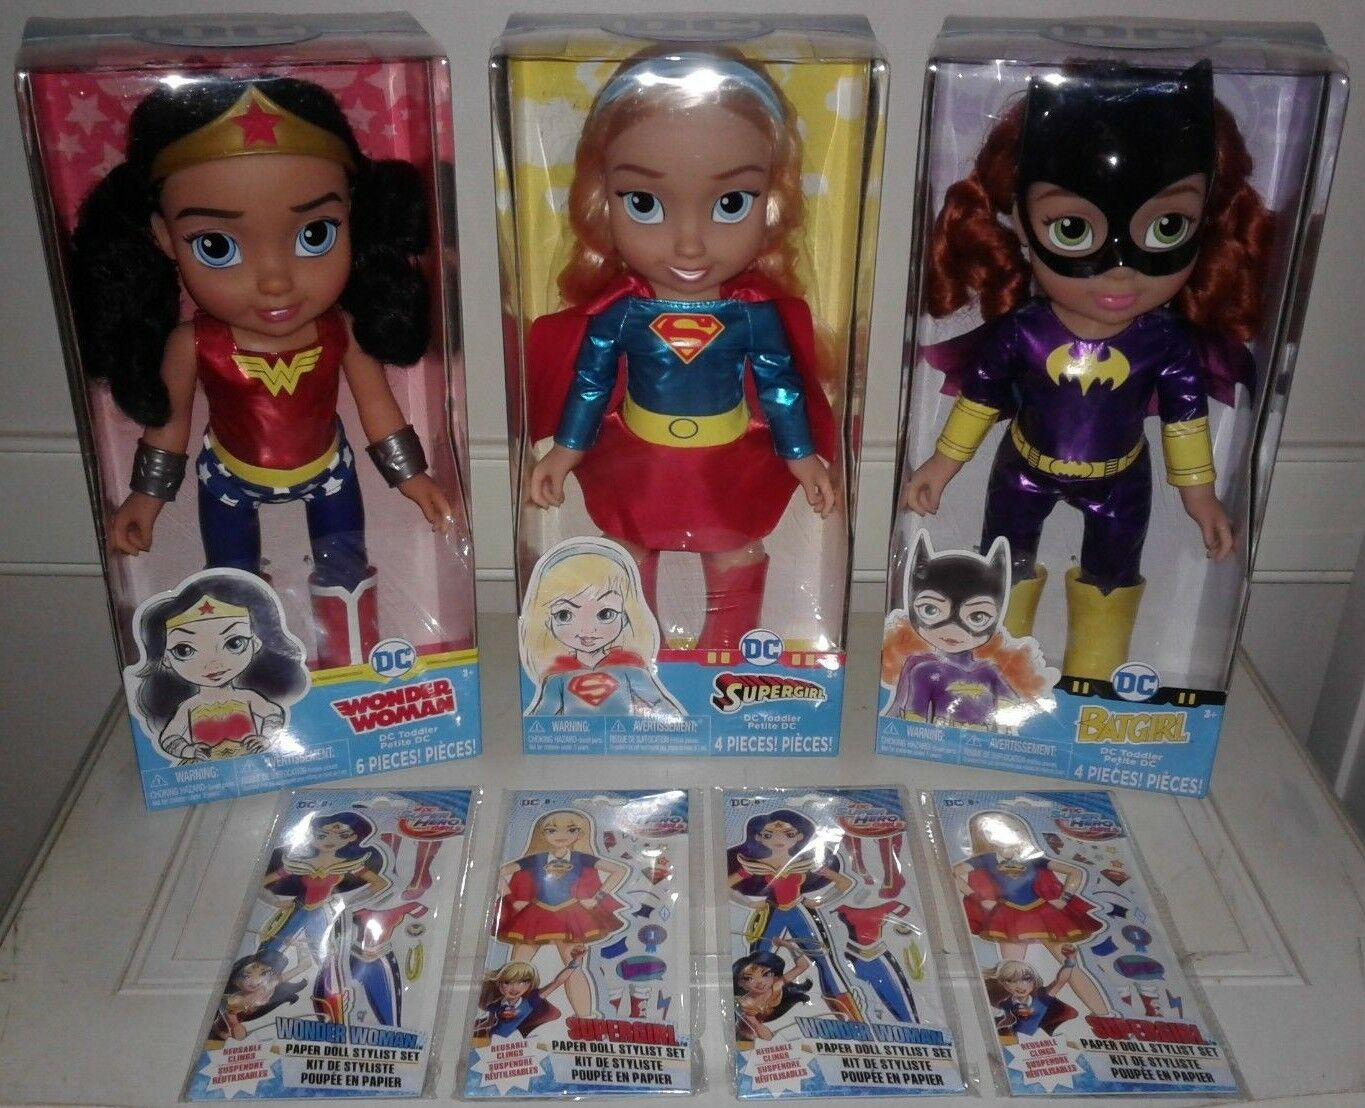 NEW DC Superhero Toddler Dolls Wonder Woman, Batgirl & Supergirl w/Paper Dolls